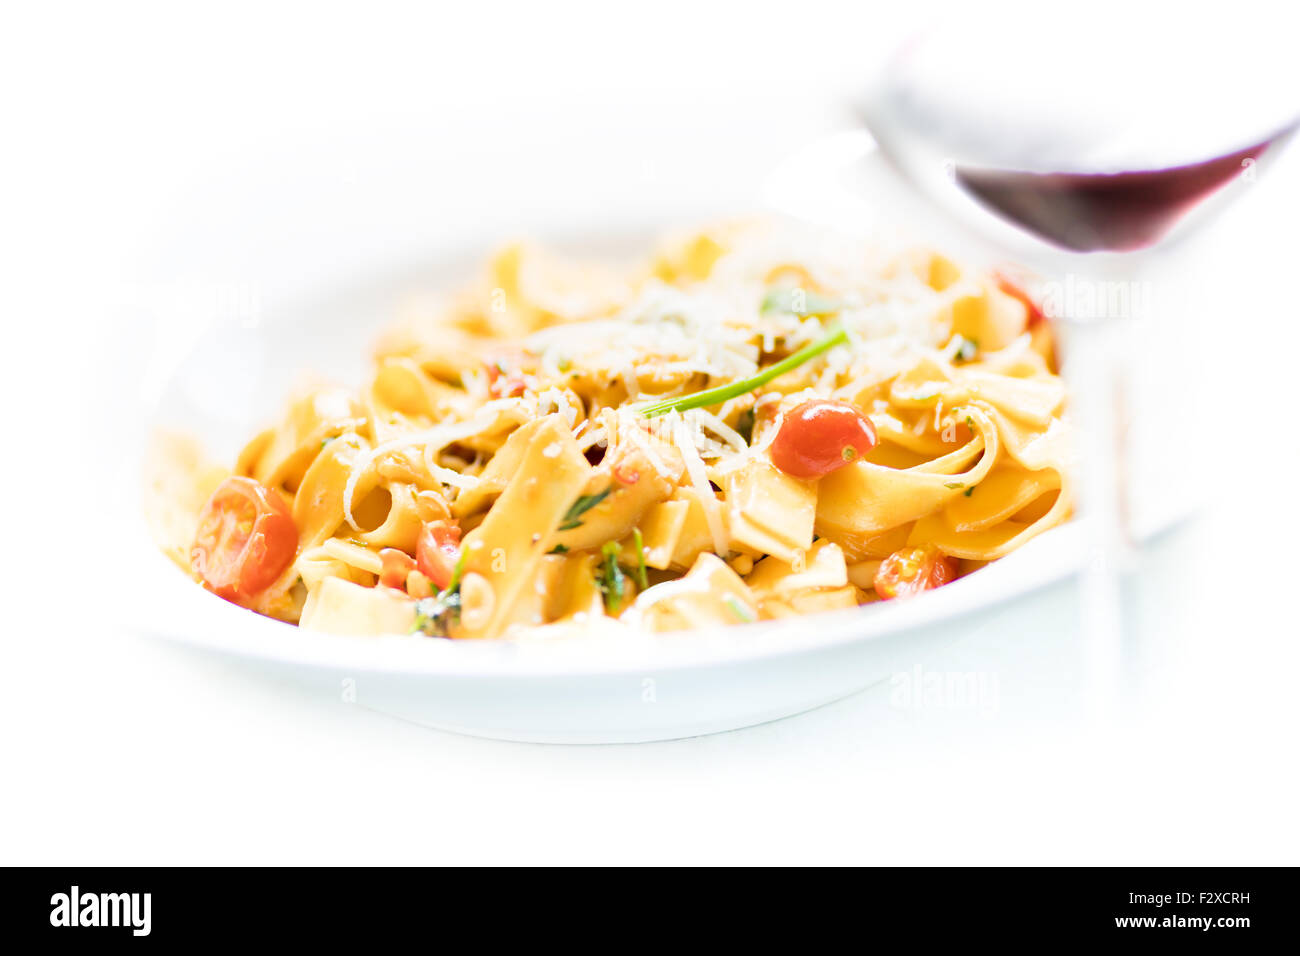 Penne all'arrabbiata, noodles, pasta, Cut, cut out white background, red wine, tomato, spicy chili, cheese, - Stock Image